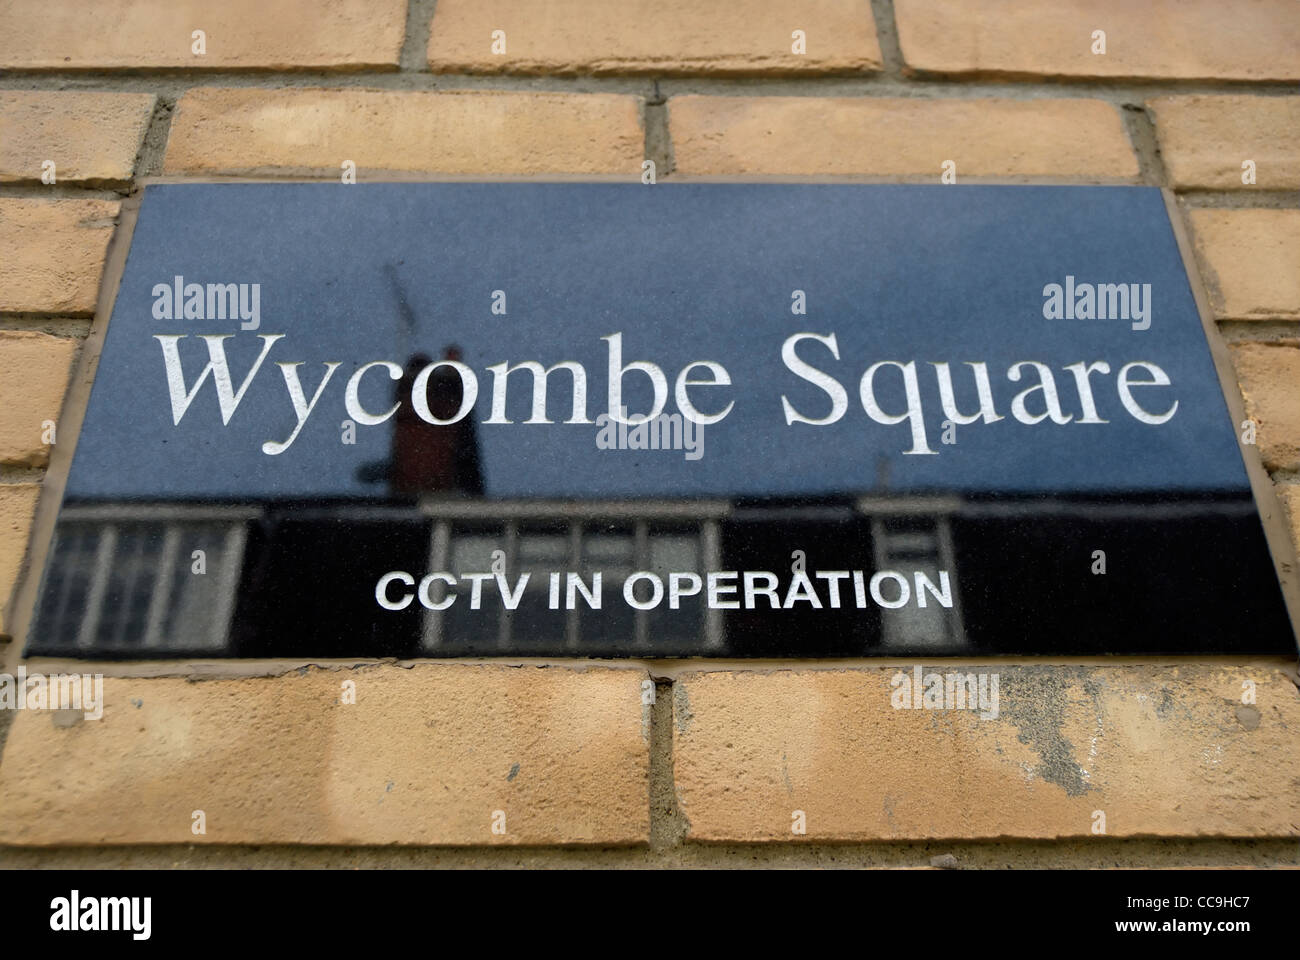 street name sign for wycombe square with warning of cctv in operation, notting hill, london, england - Stock Image